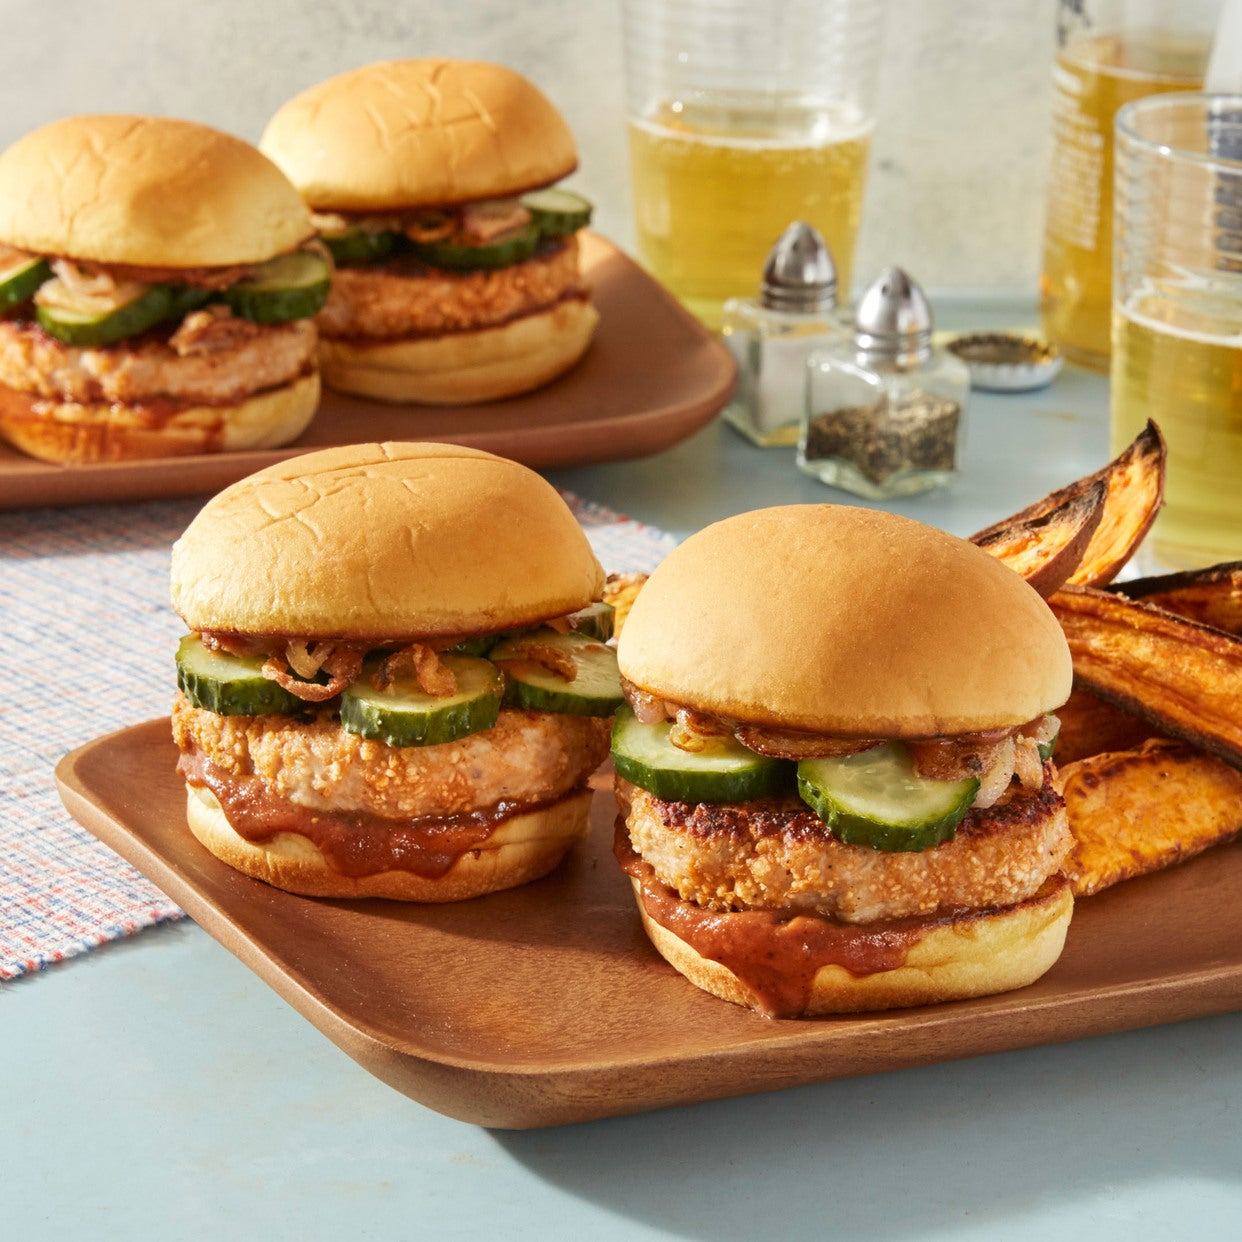 BBQ Chicken Sliders with Crispy Shallot, Quick Pickles, & Sweet Potato Wedges